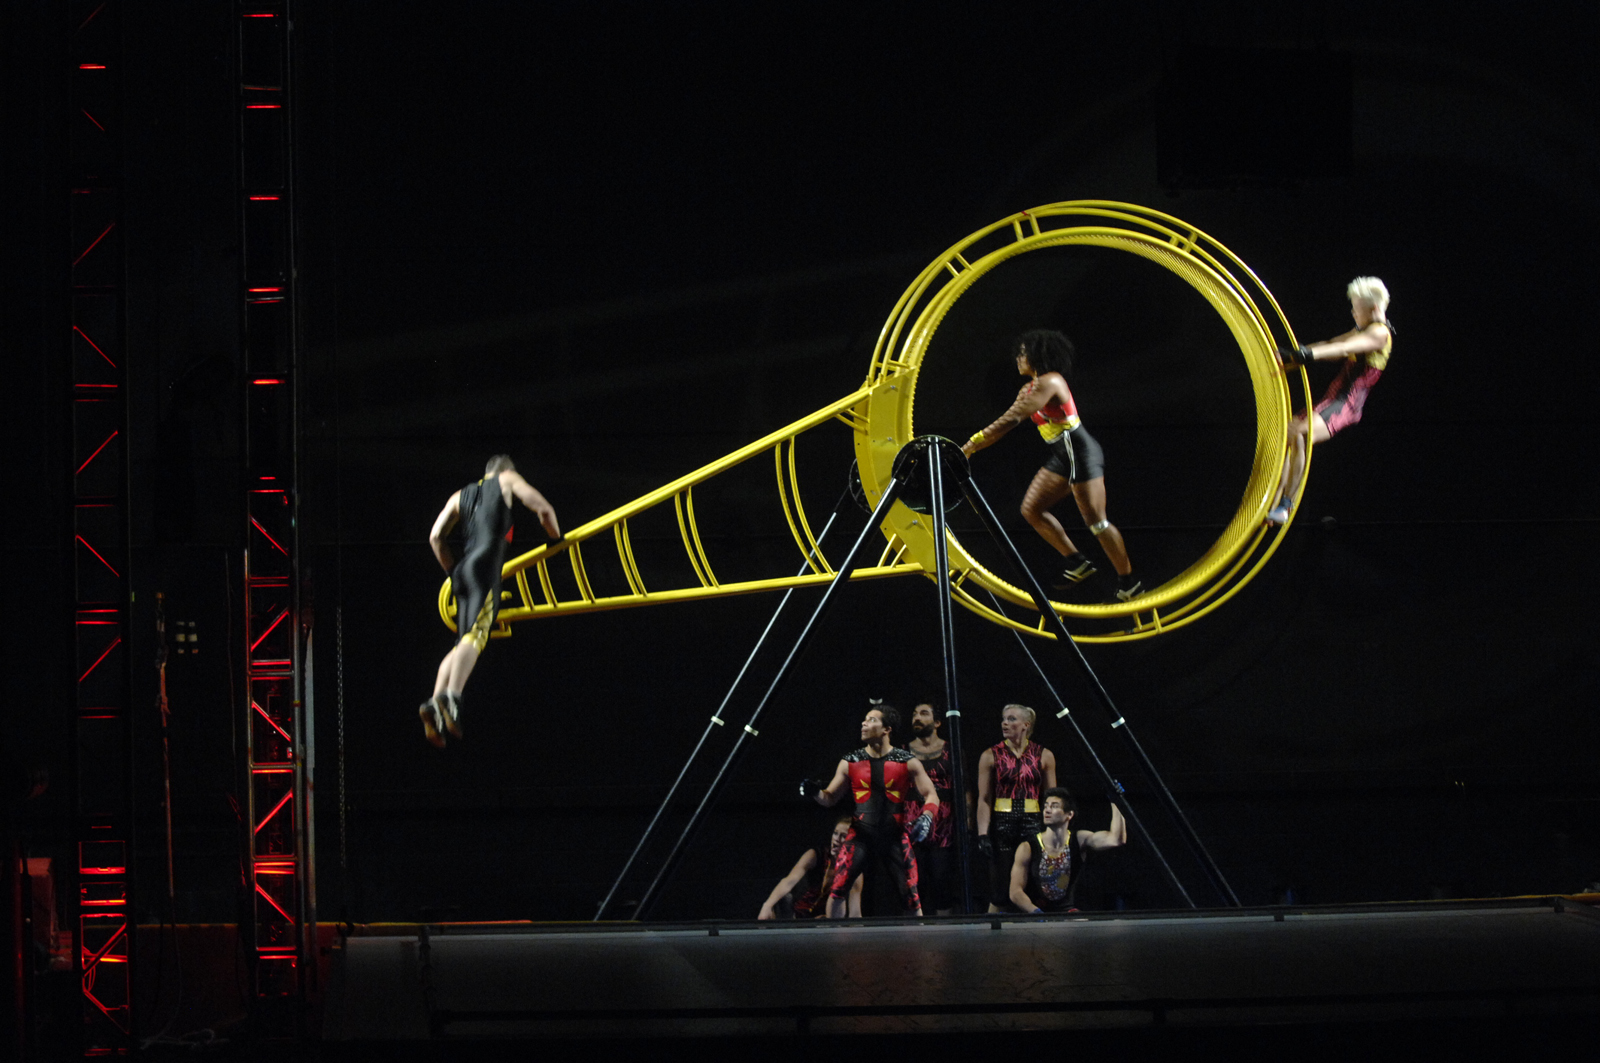 The dance company Streb during a performance. Streb will help lead an interdisciplinary project at UNL in 2014.